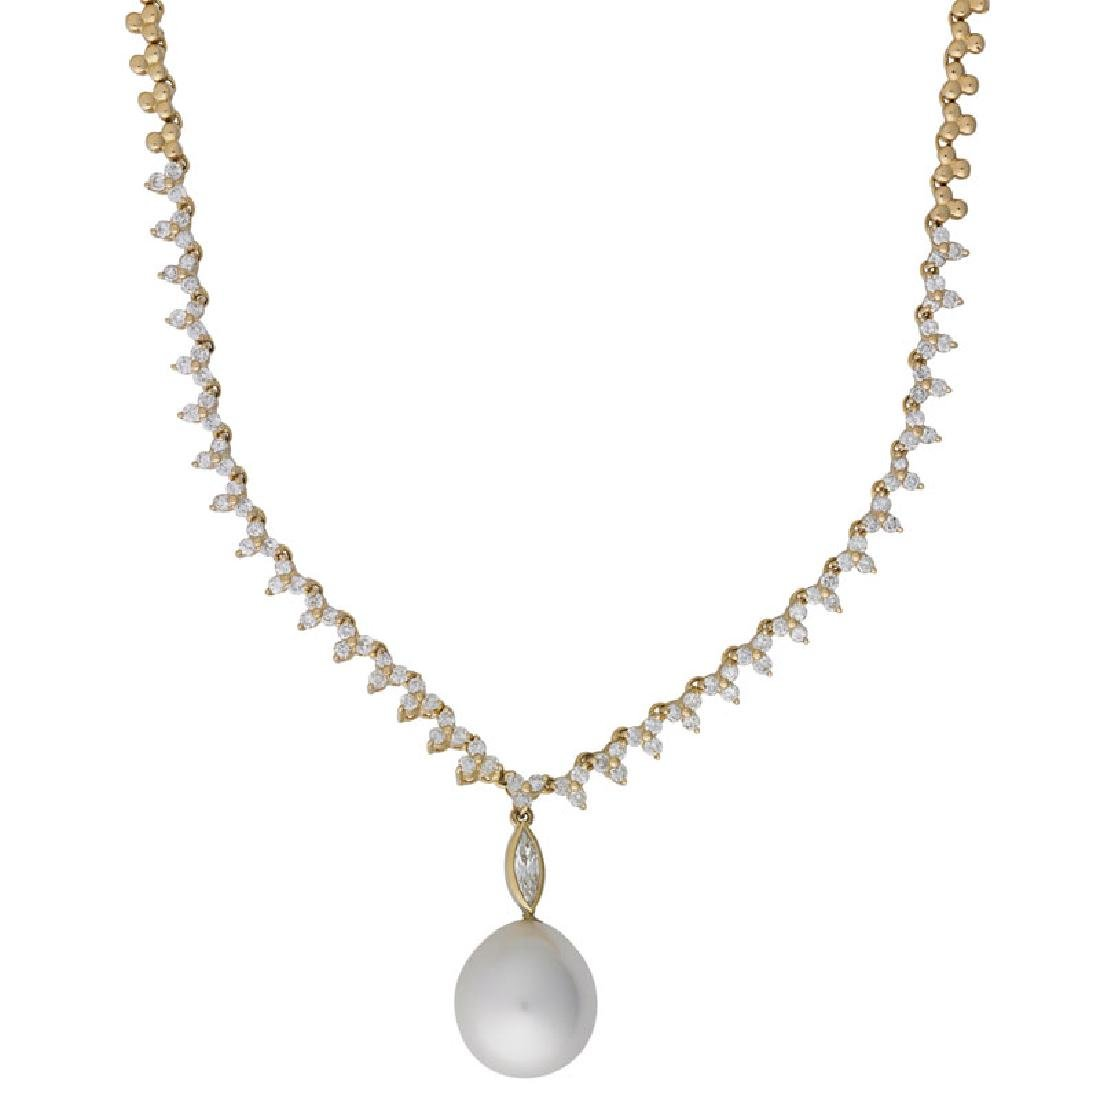 SOUTH SEA PEARL, DIAMOND & YELLOW GOLD NECKLACE